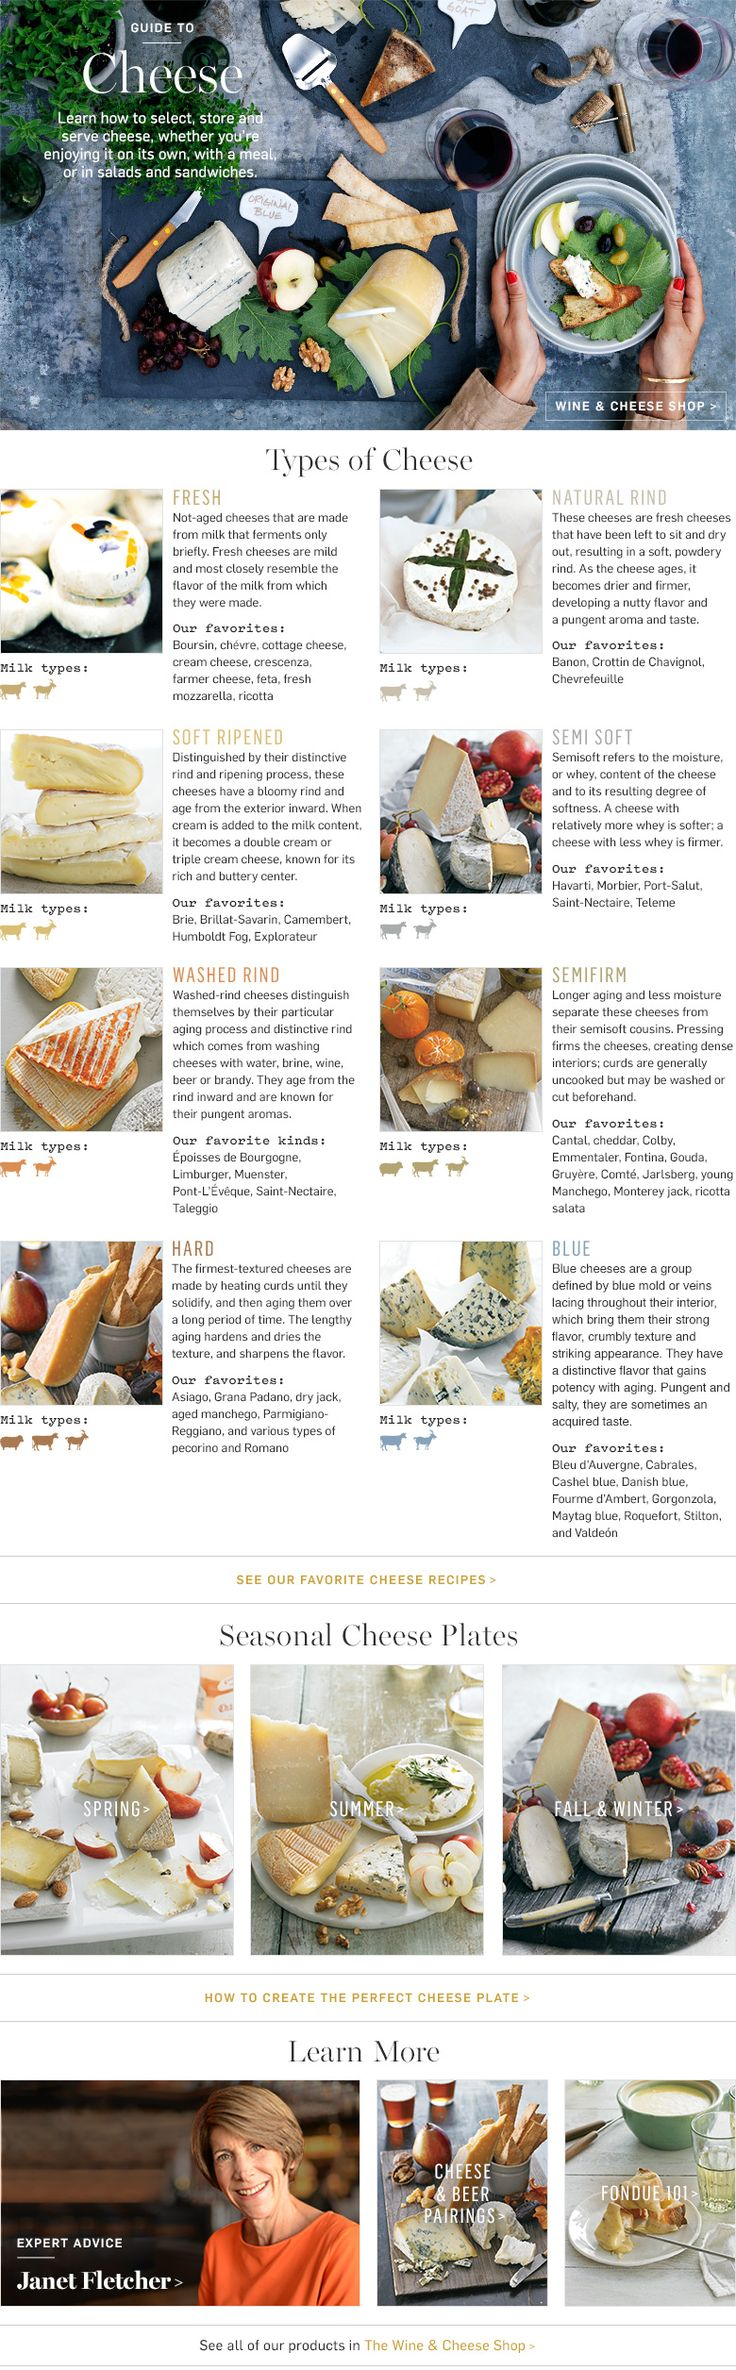 Types of Cheese and How to Select Cheese